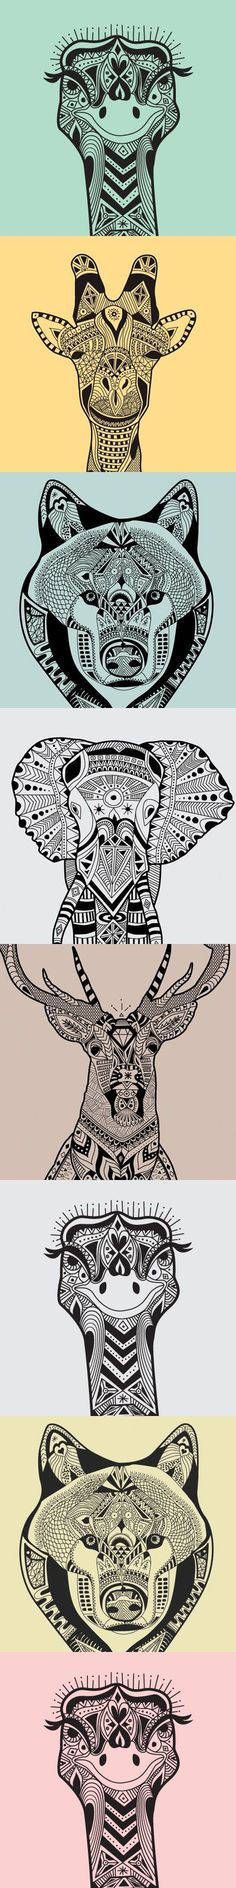 wild animals zentangle patterns - Zentangle - More doodle ideas - Zentangle - doodle - doodling - zentangle patterns. zentangle inspired - #zentangle #doodling #zentanglepatterns